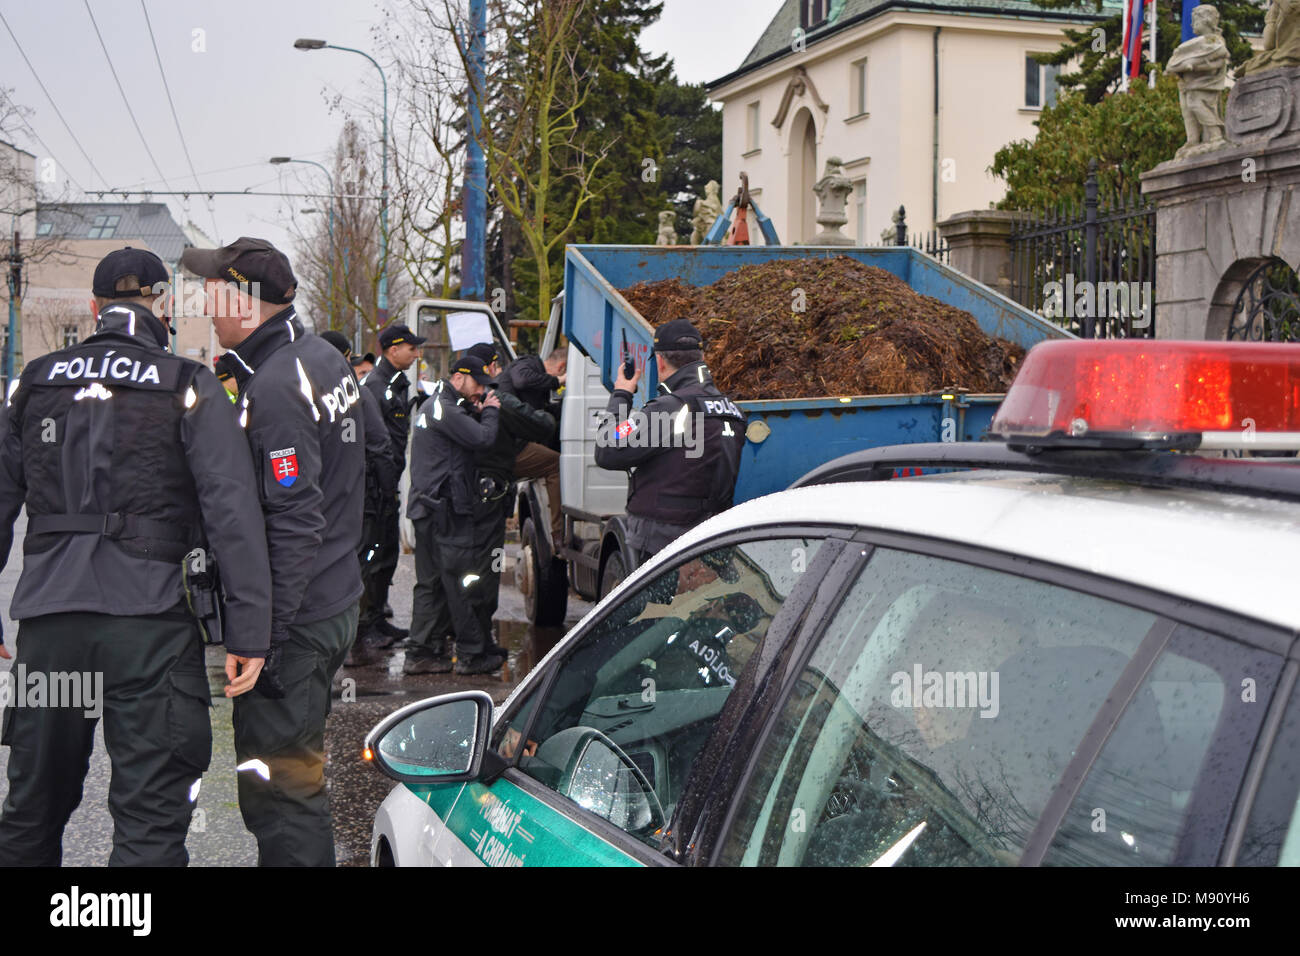 Bratislava, Slovakia. 16 March 2018. Police inspects the driver of the car that brought the cargo of manure in front of the Government Office Stock Photo